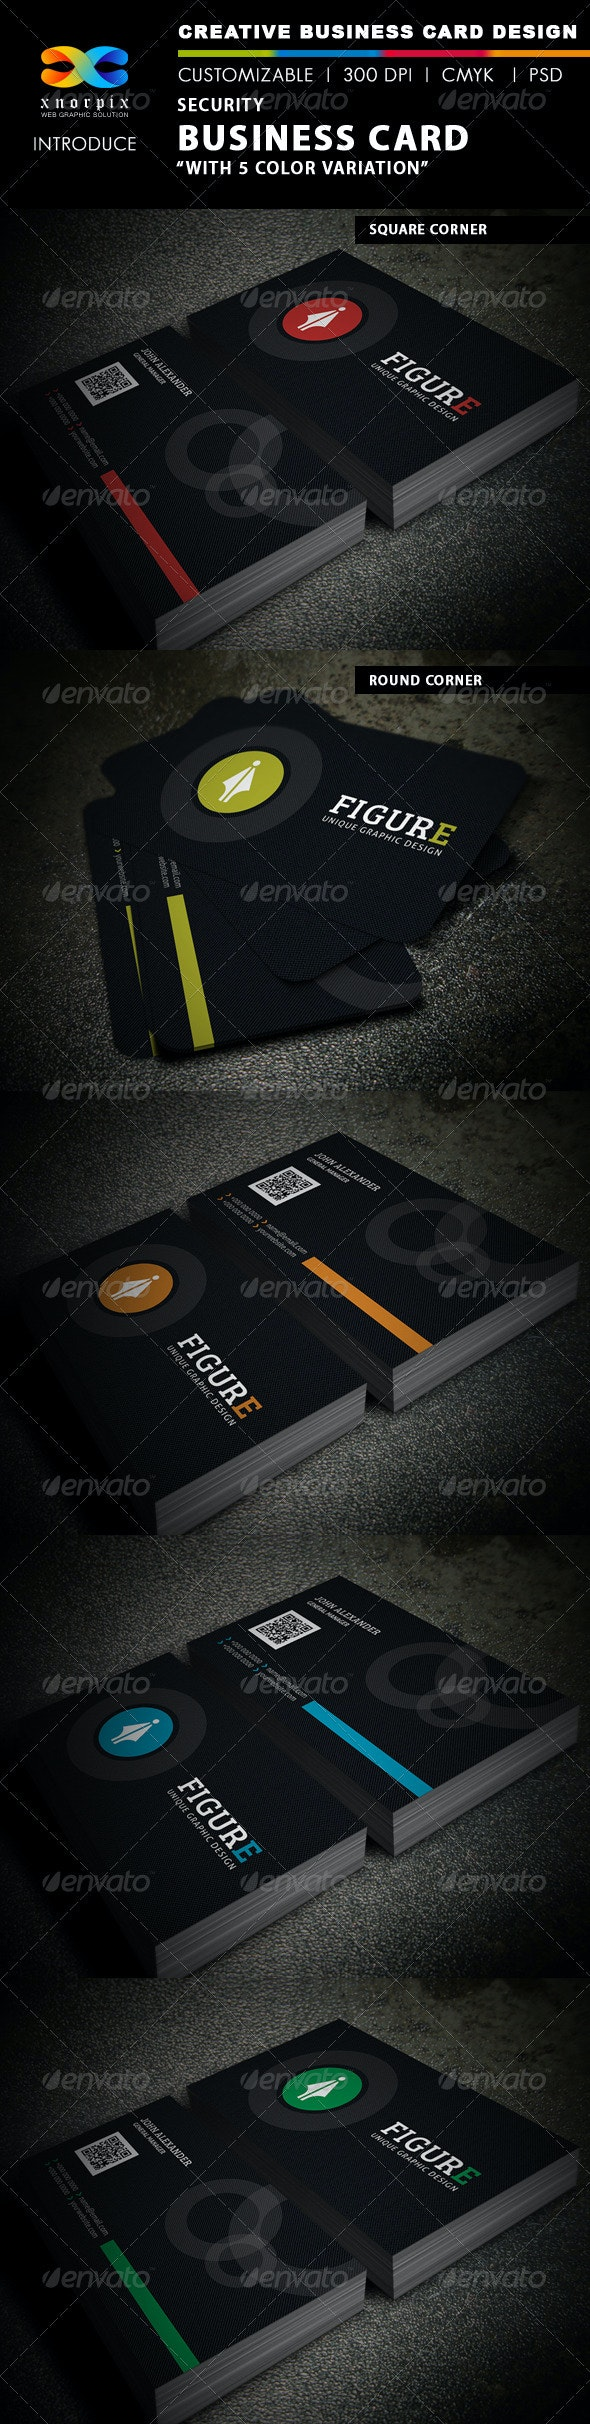 Security Business Card - Creative Business Cards